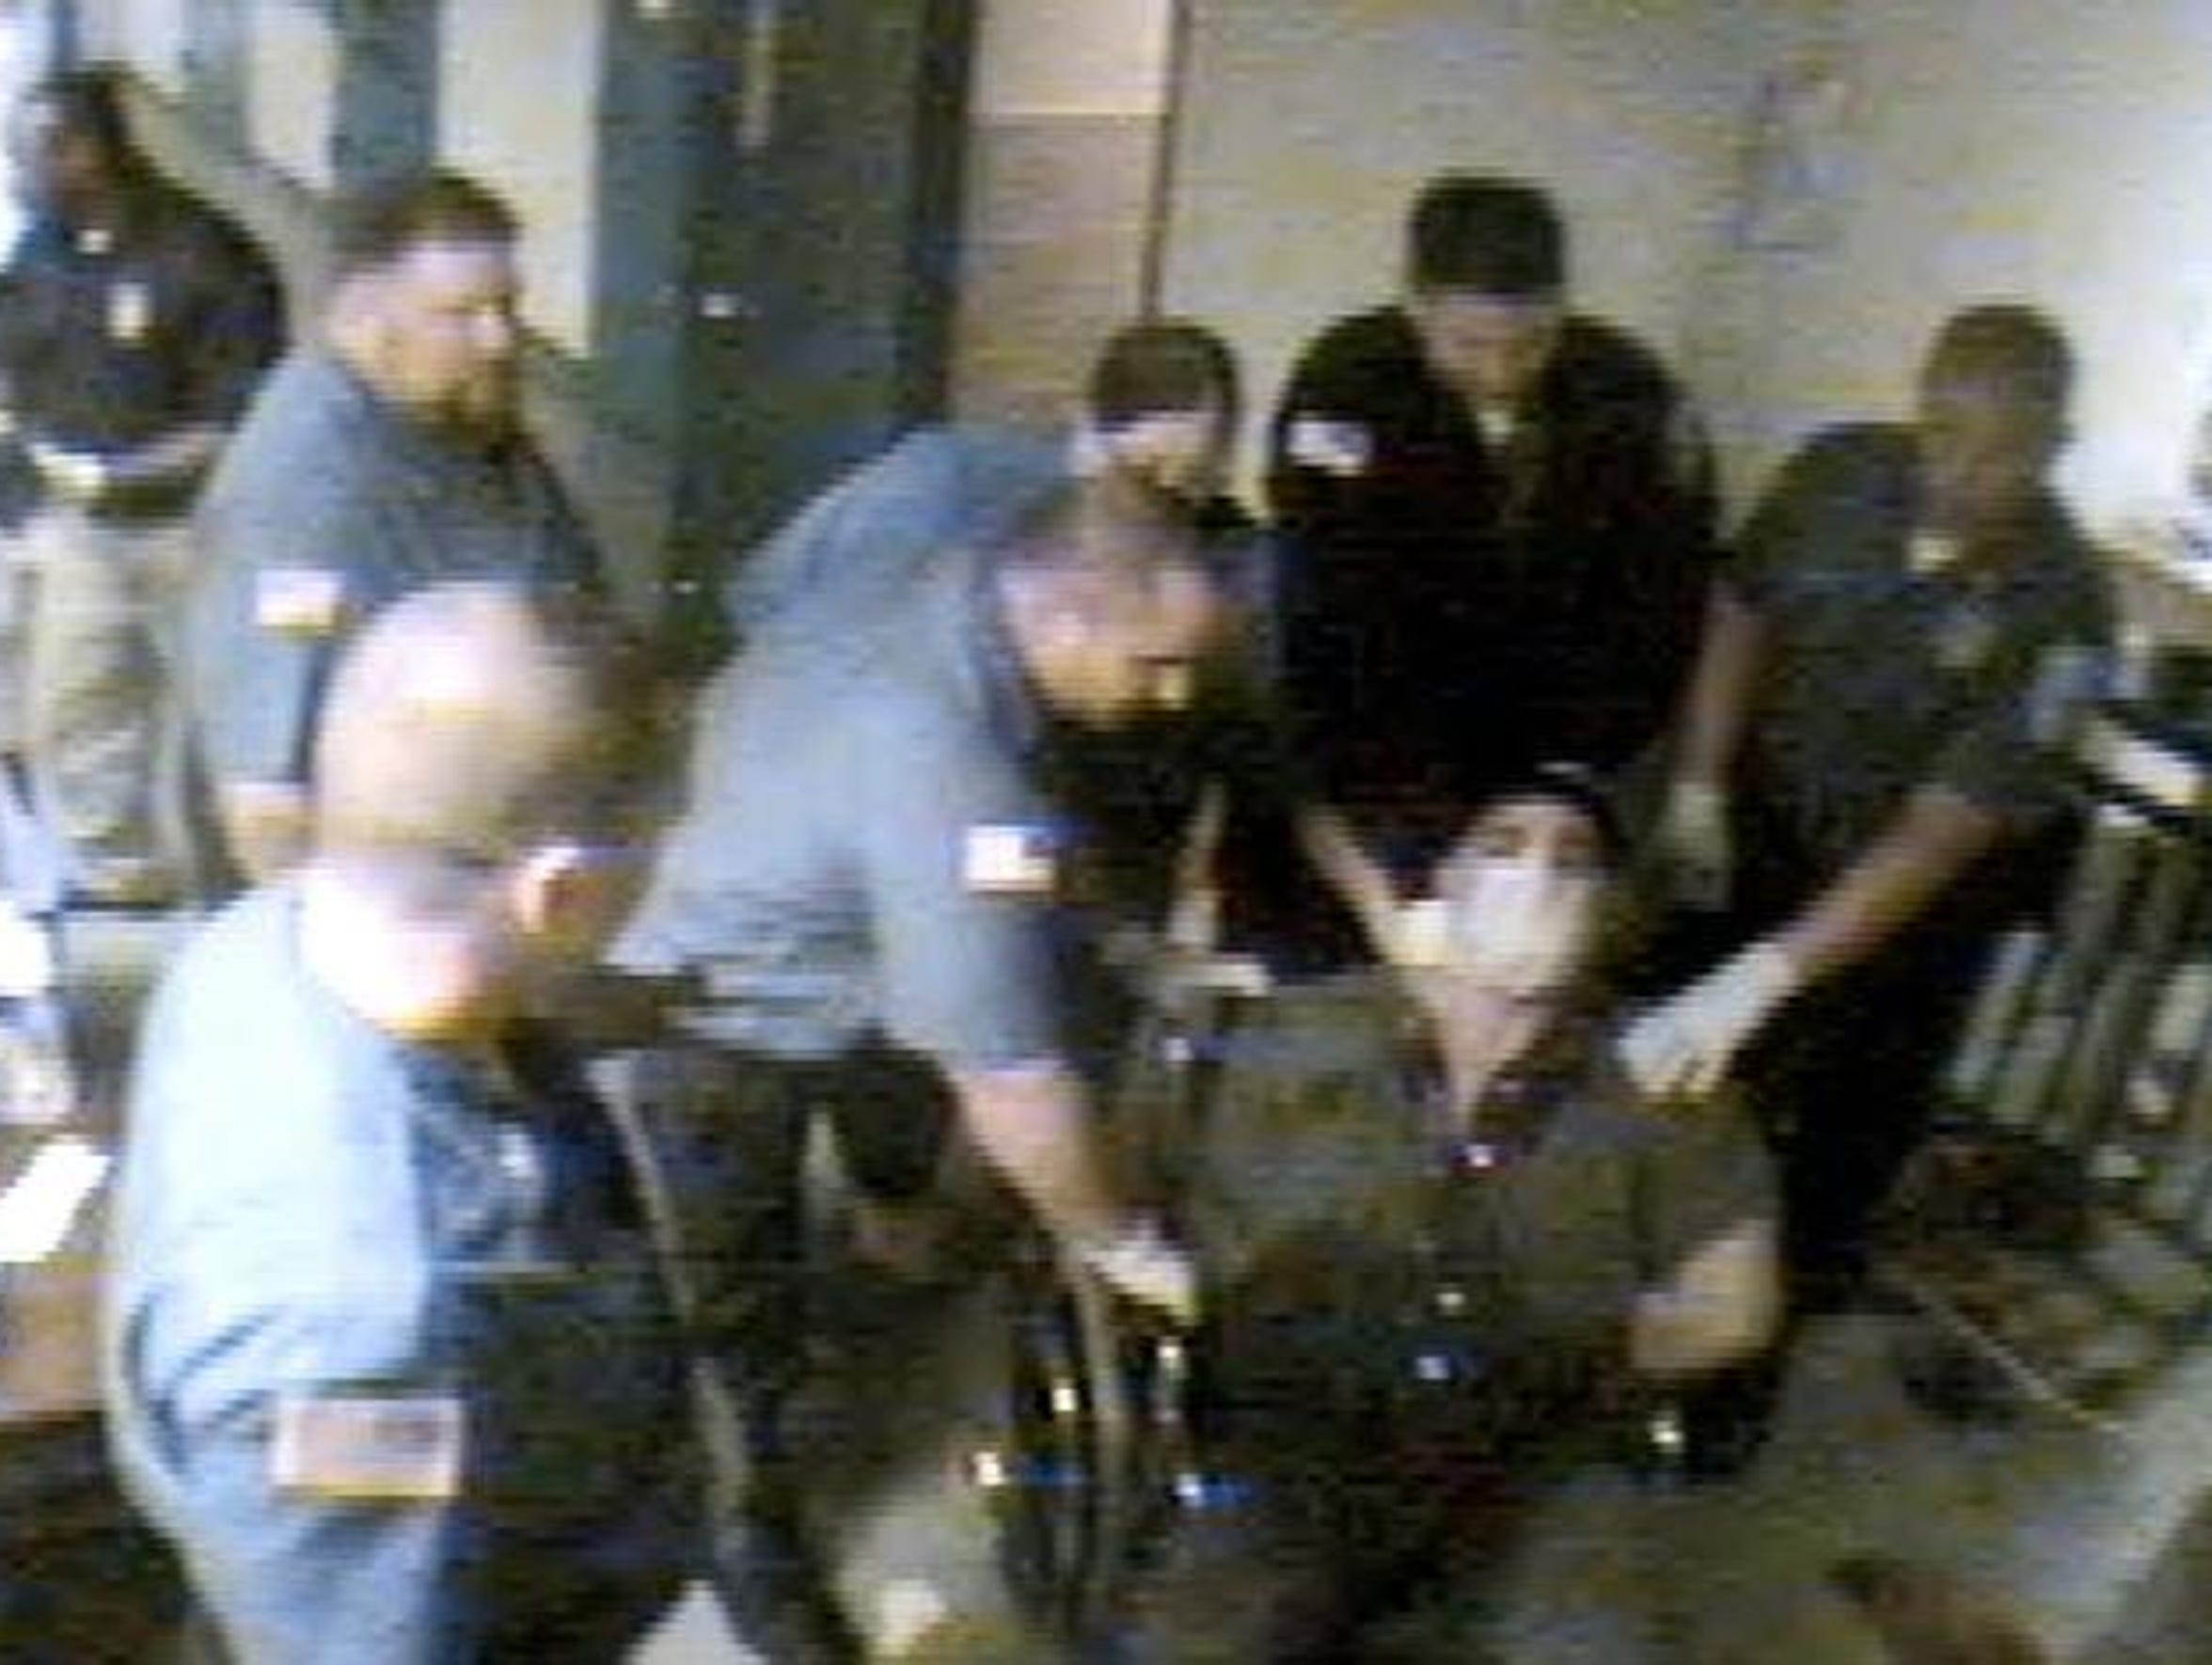 Corrections officers take Bornstein to the jail's medical